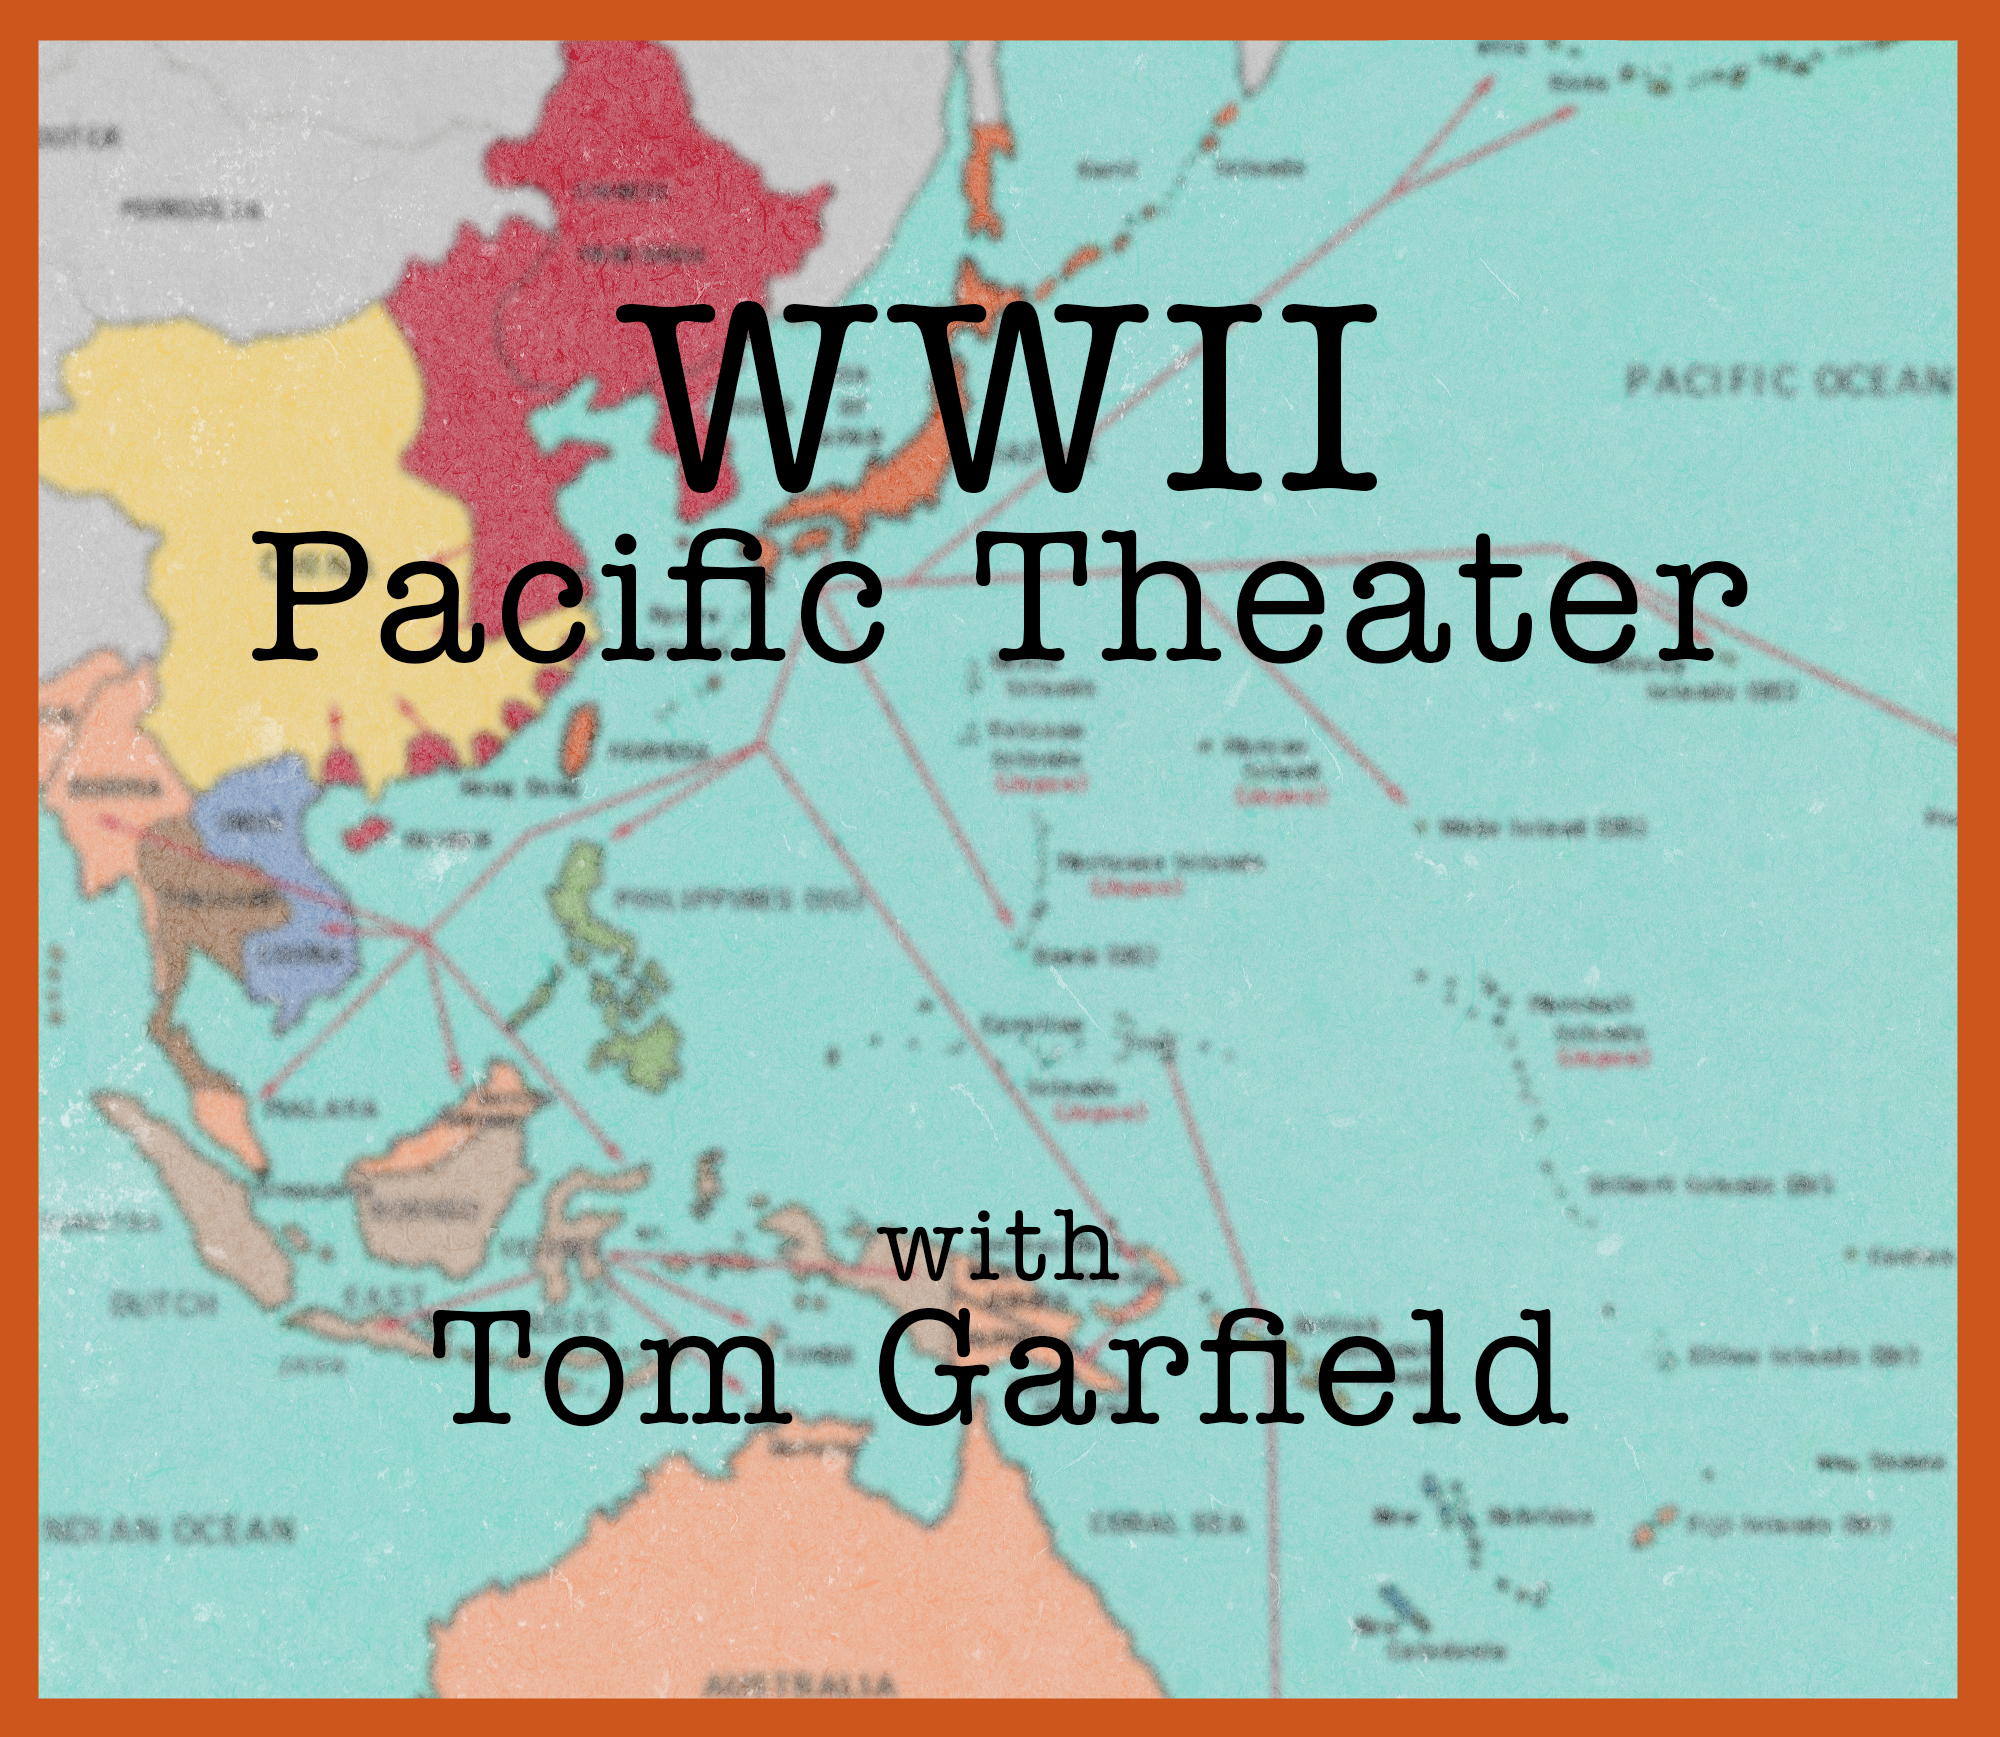 World War II, Part II – The Pacific Theater